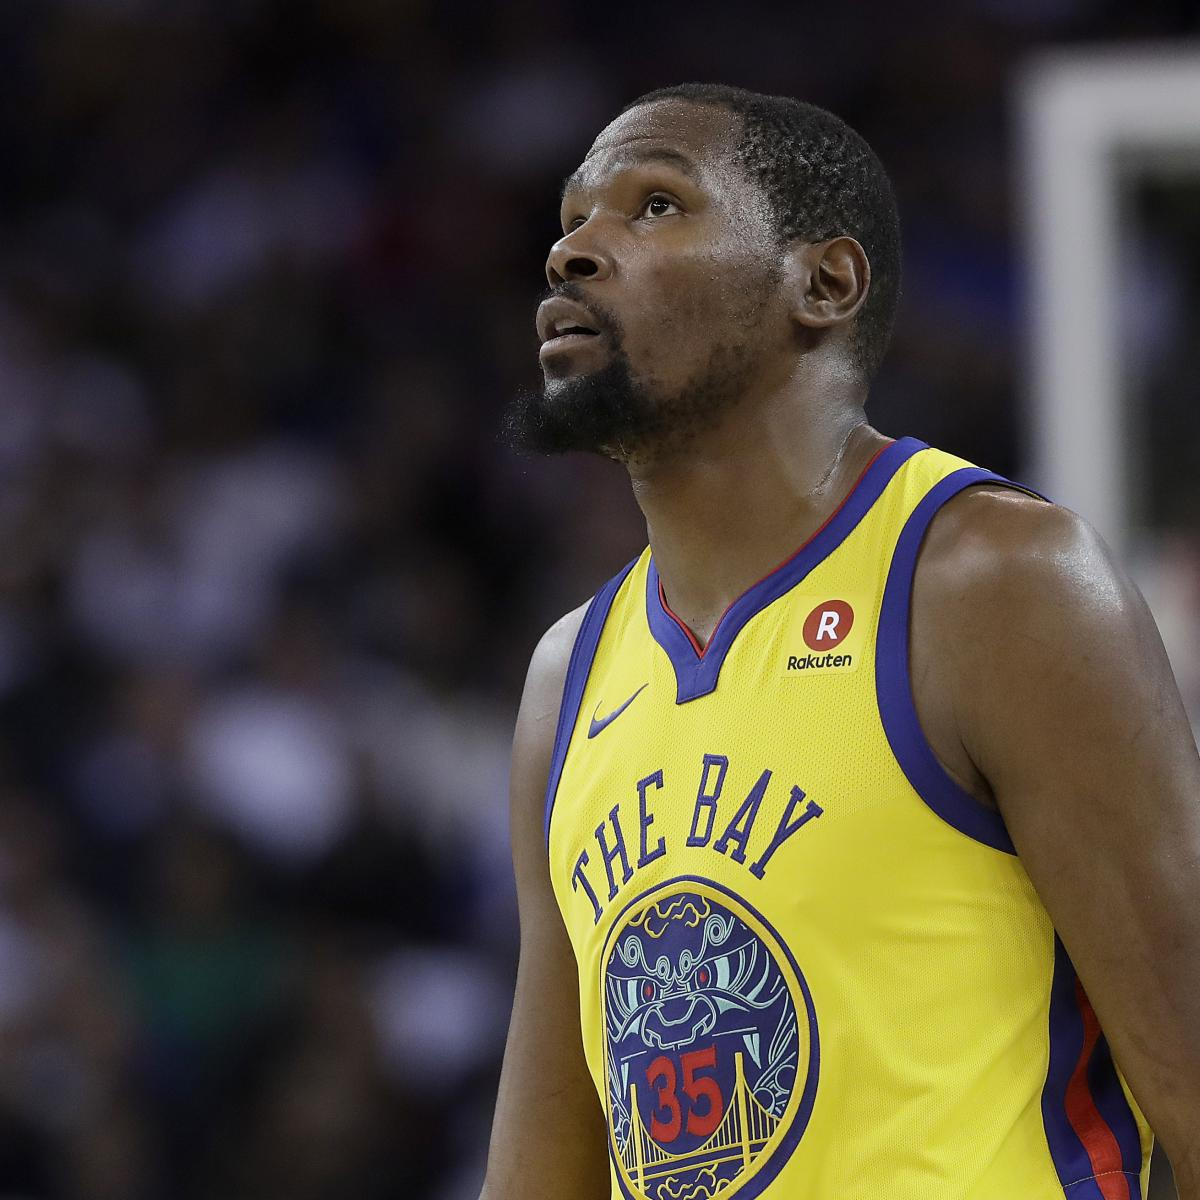 Portland Trail Blazers Vs Warriors: Fan Ejected After Having Words With Kevin Durant At